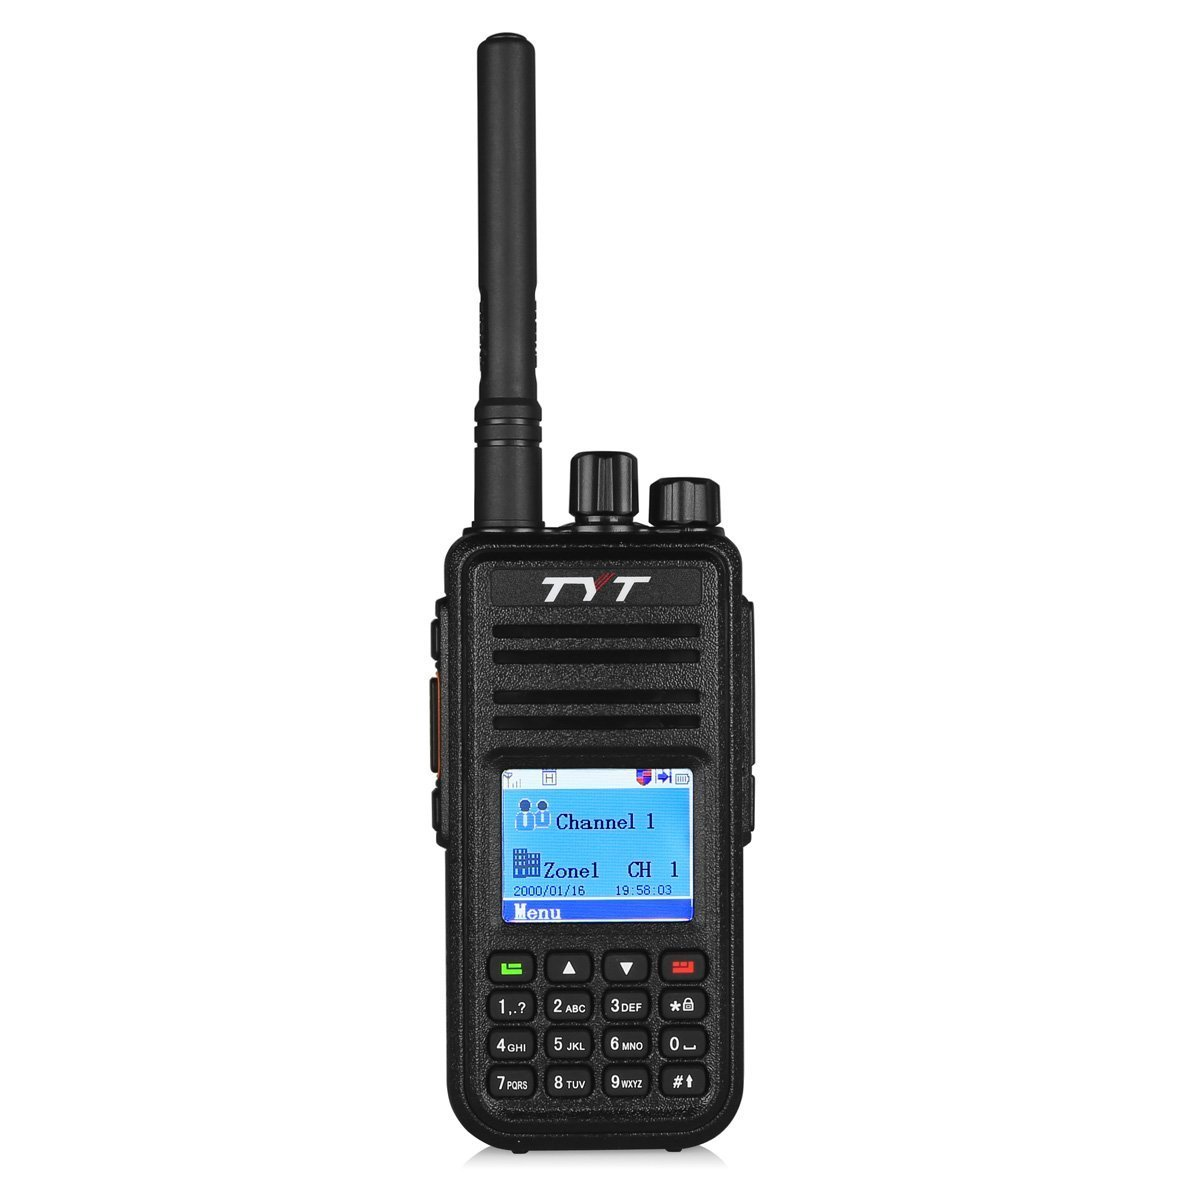 TYT MD-380 DMR Digital Radio, VHF Two Way Radio Walkie Talkie, Transceiver Compatible with Mototrbo, Up to 1000 Channels, with Color LCD Display, Cable and 2 Antenna High Gain One included